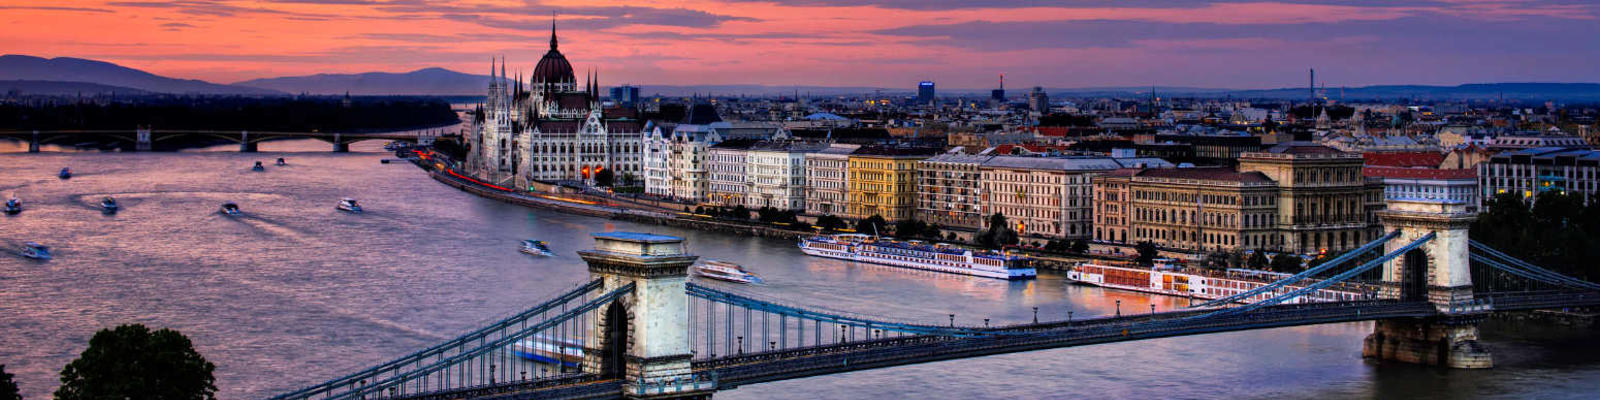 river danube and budapest at sunset